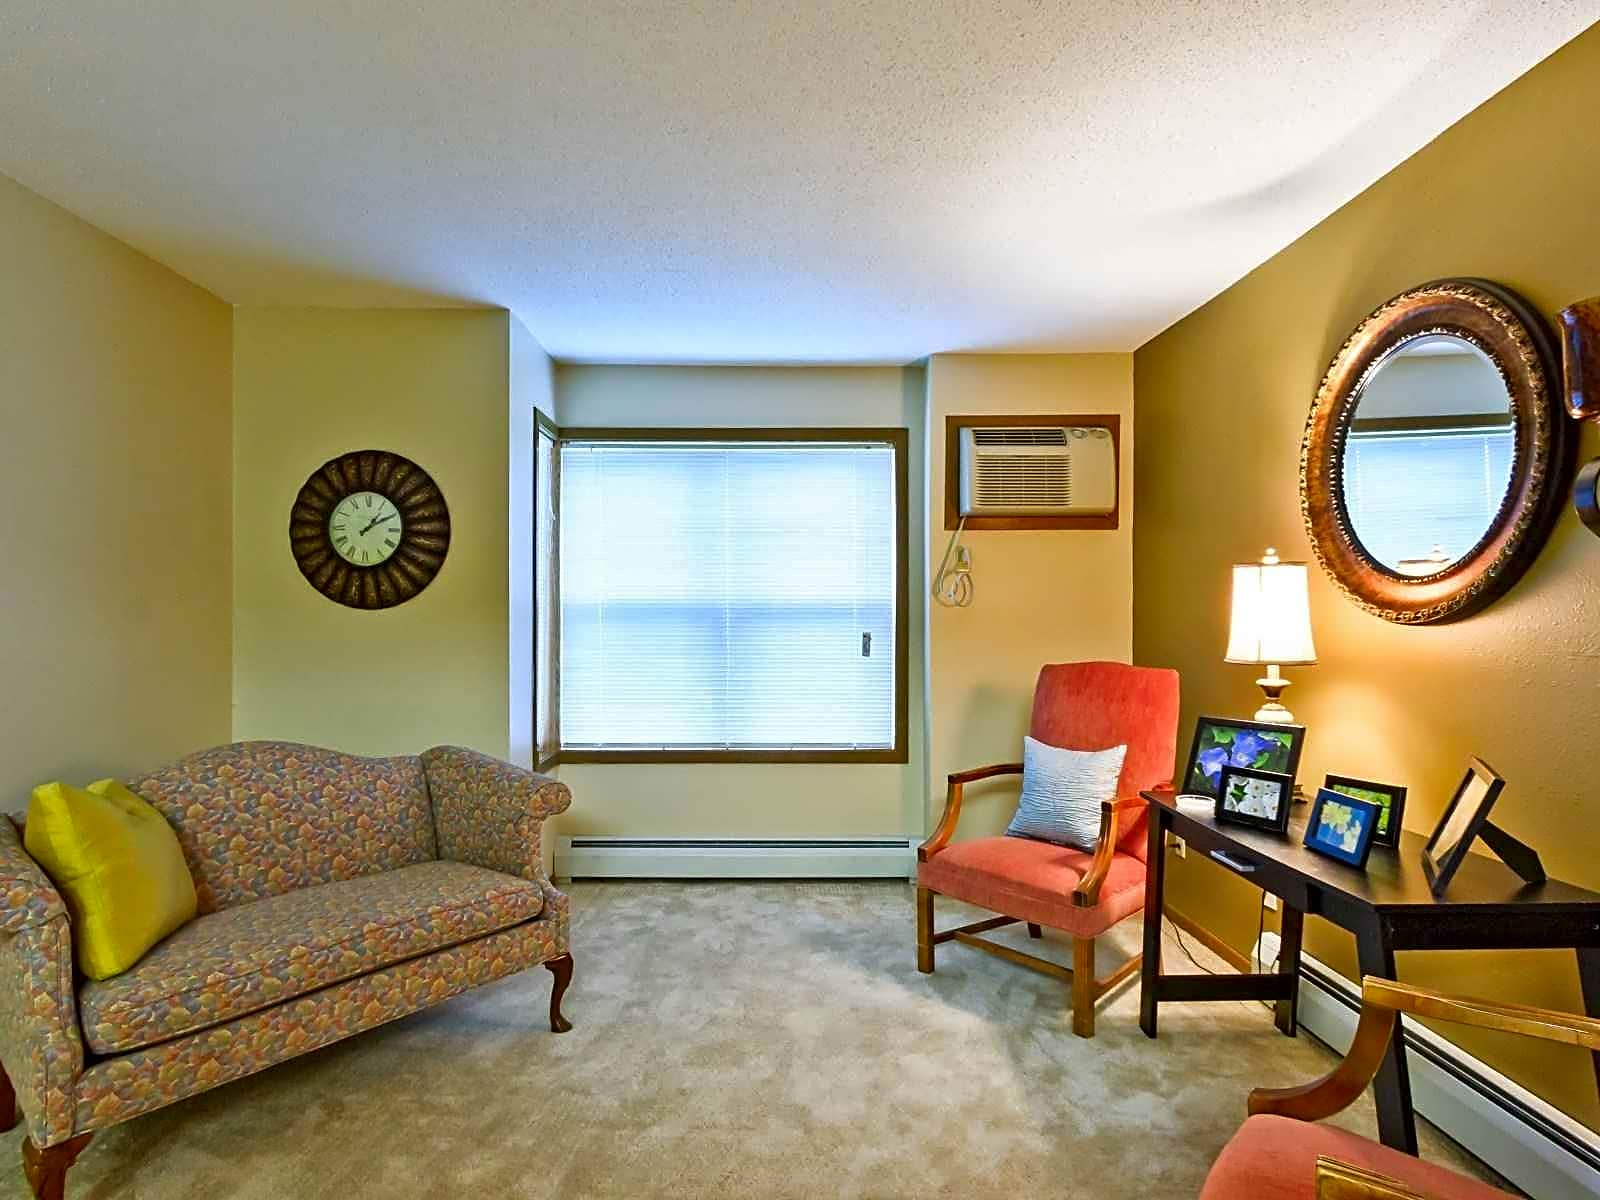 Carriage house apartments moorhead mn 56560 for Carriage house garden apartments